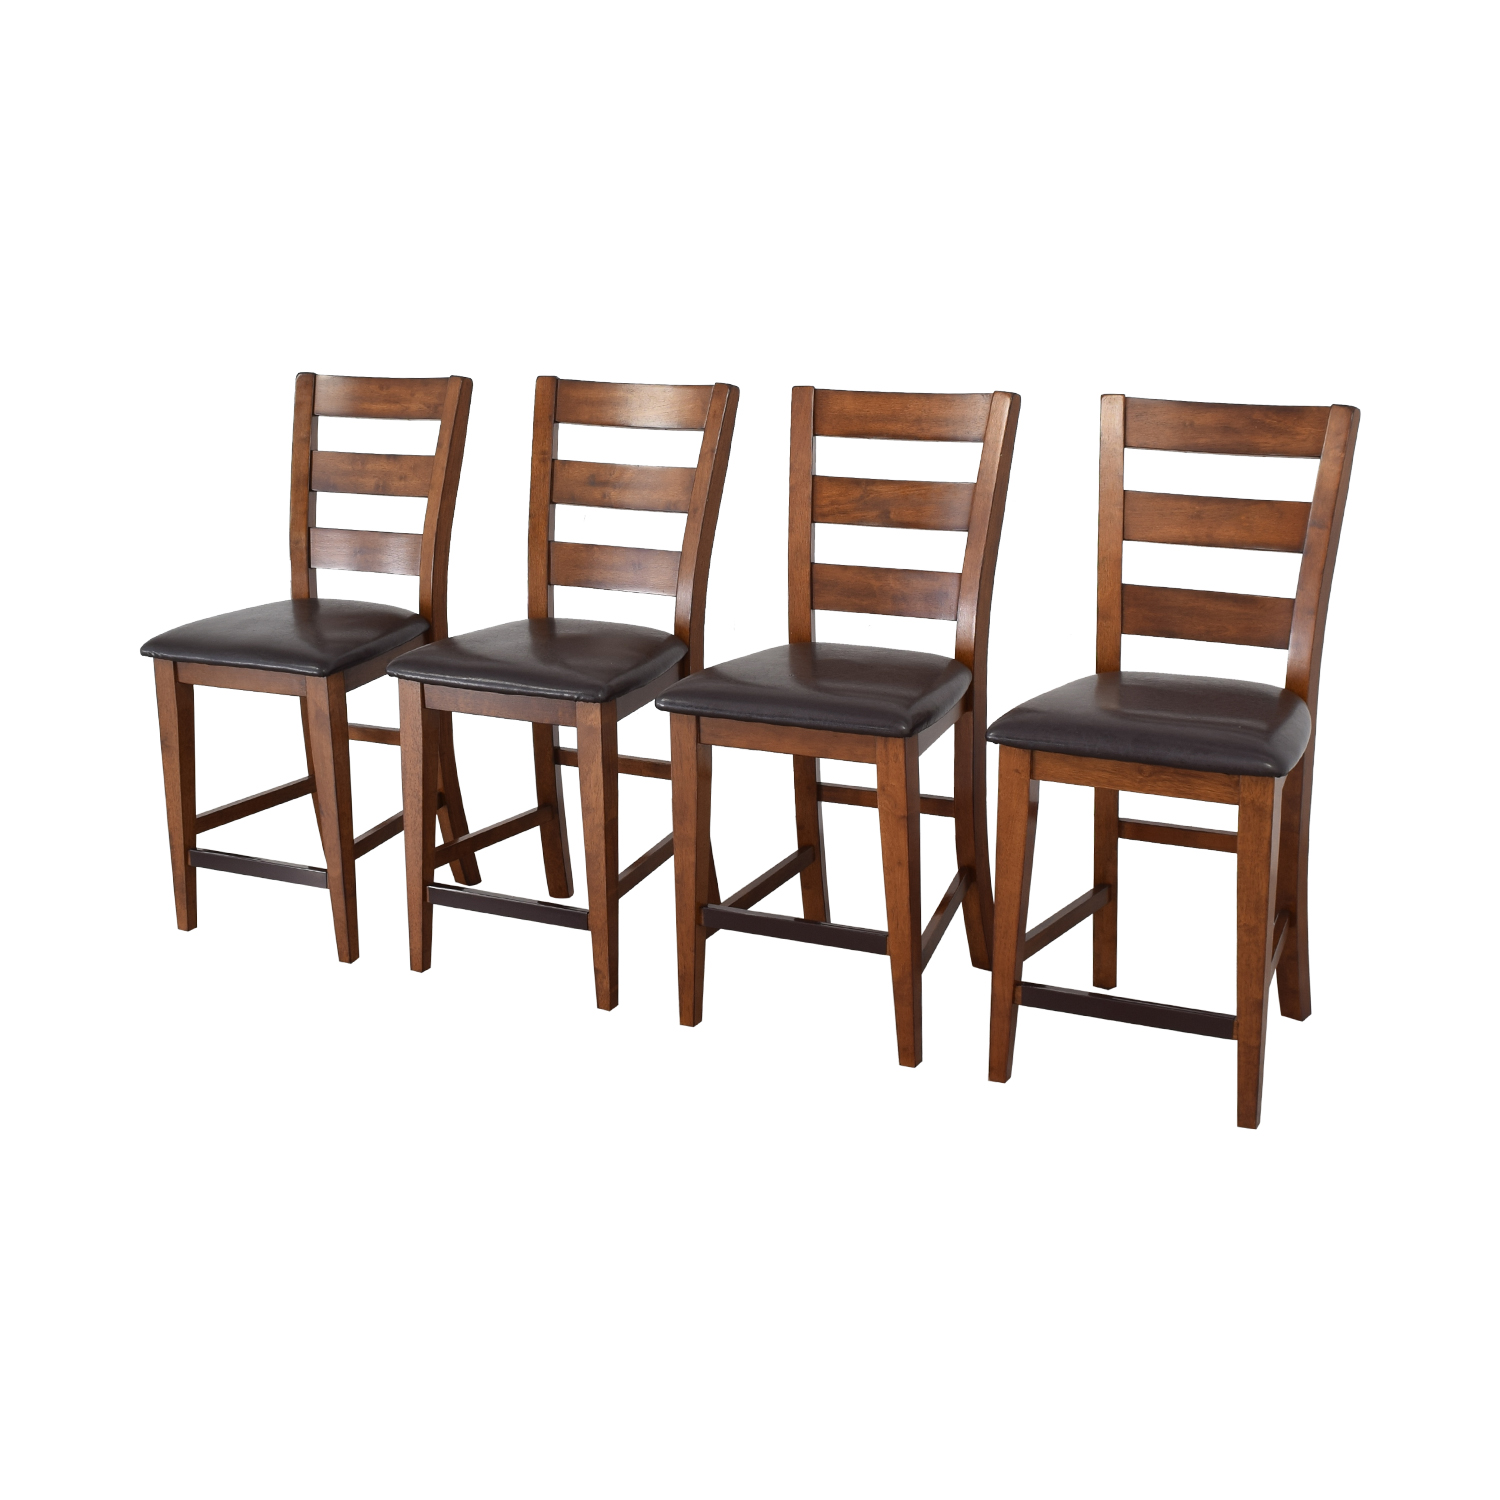 American Signature American Signature Ladder Back Dining Chairs used